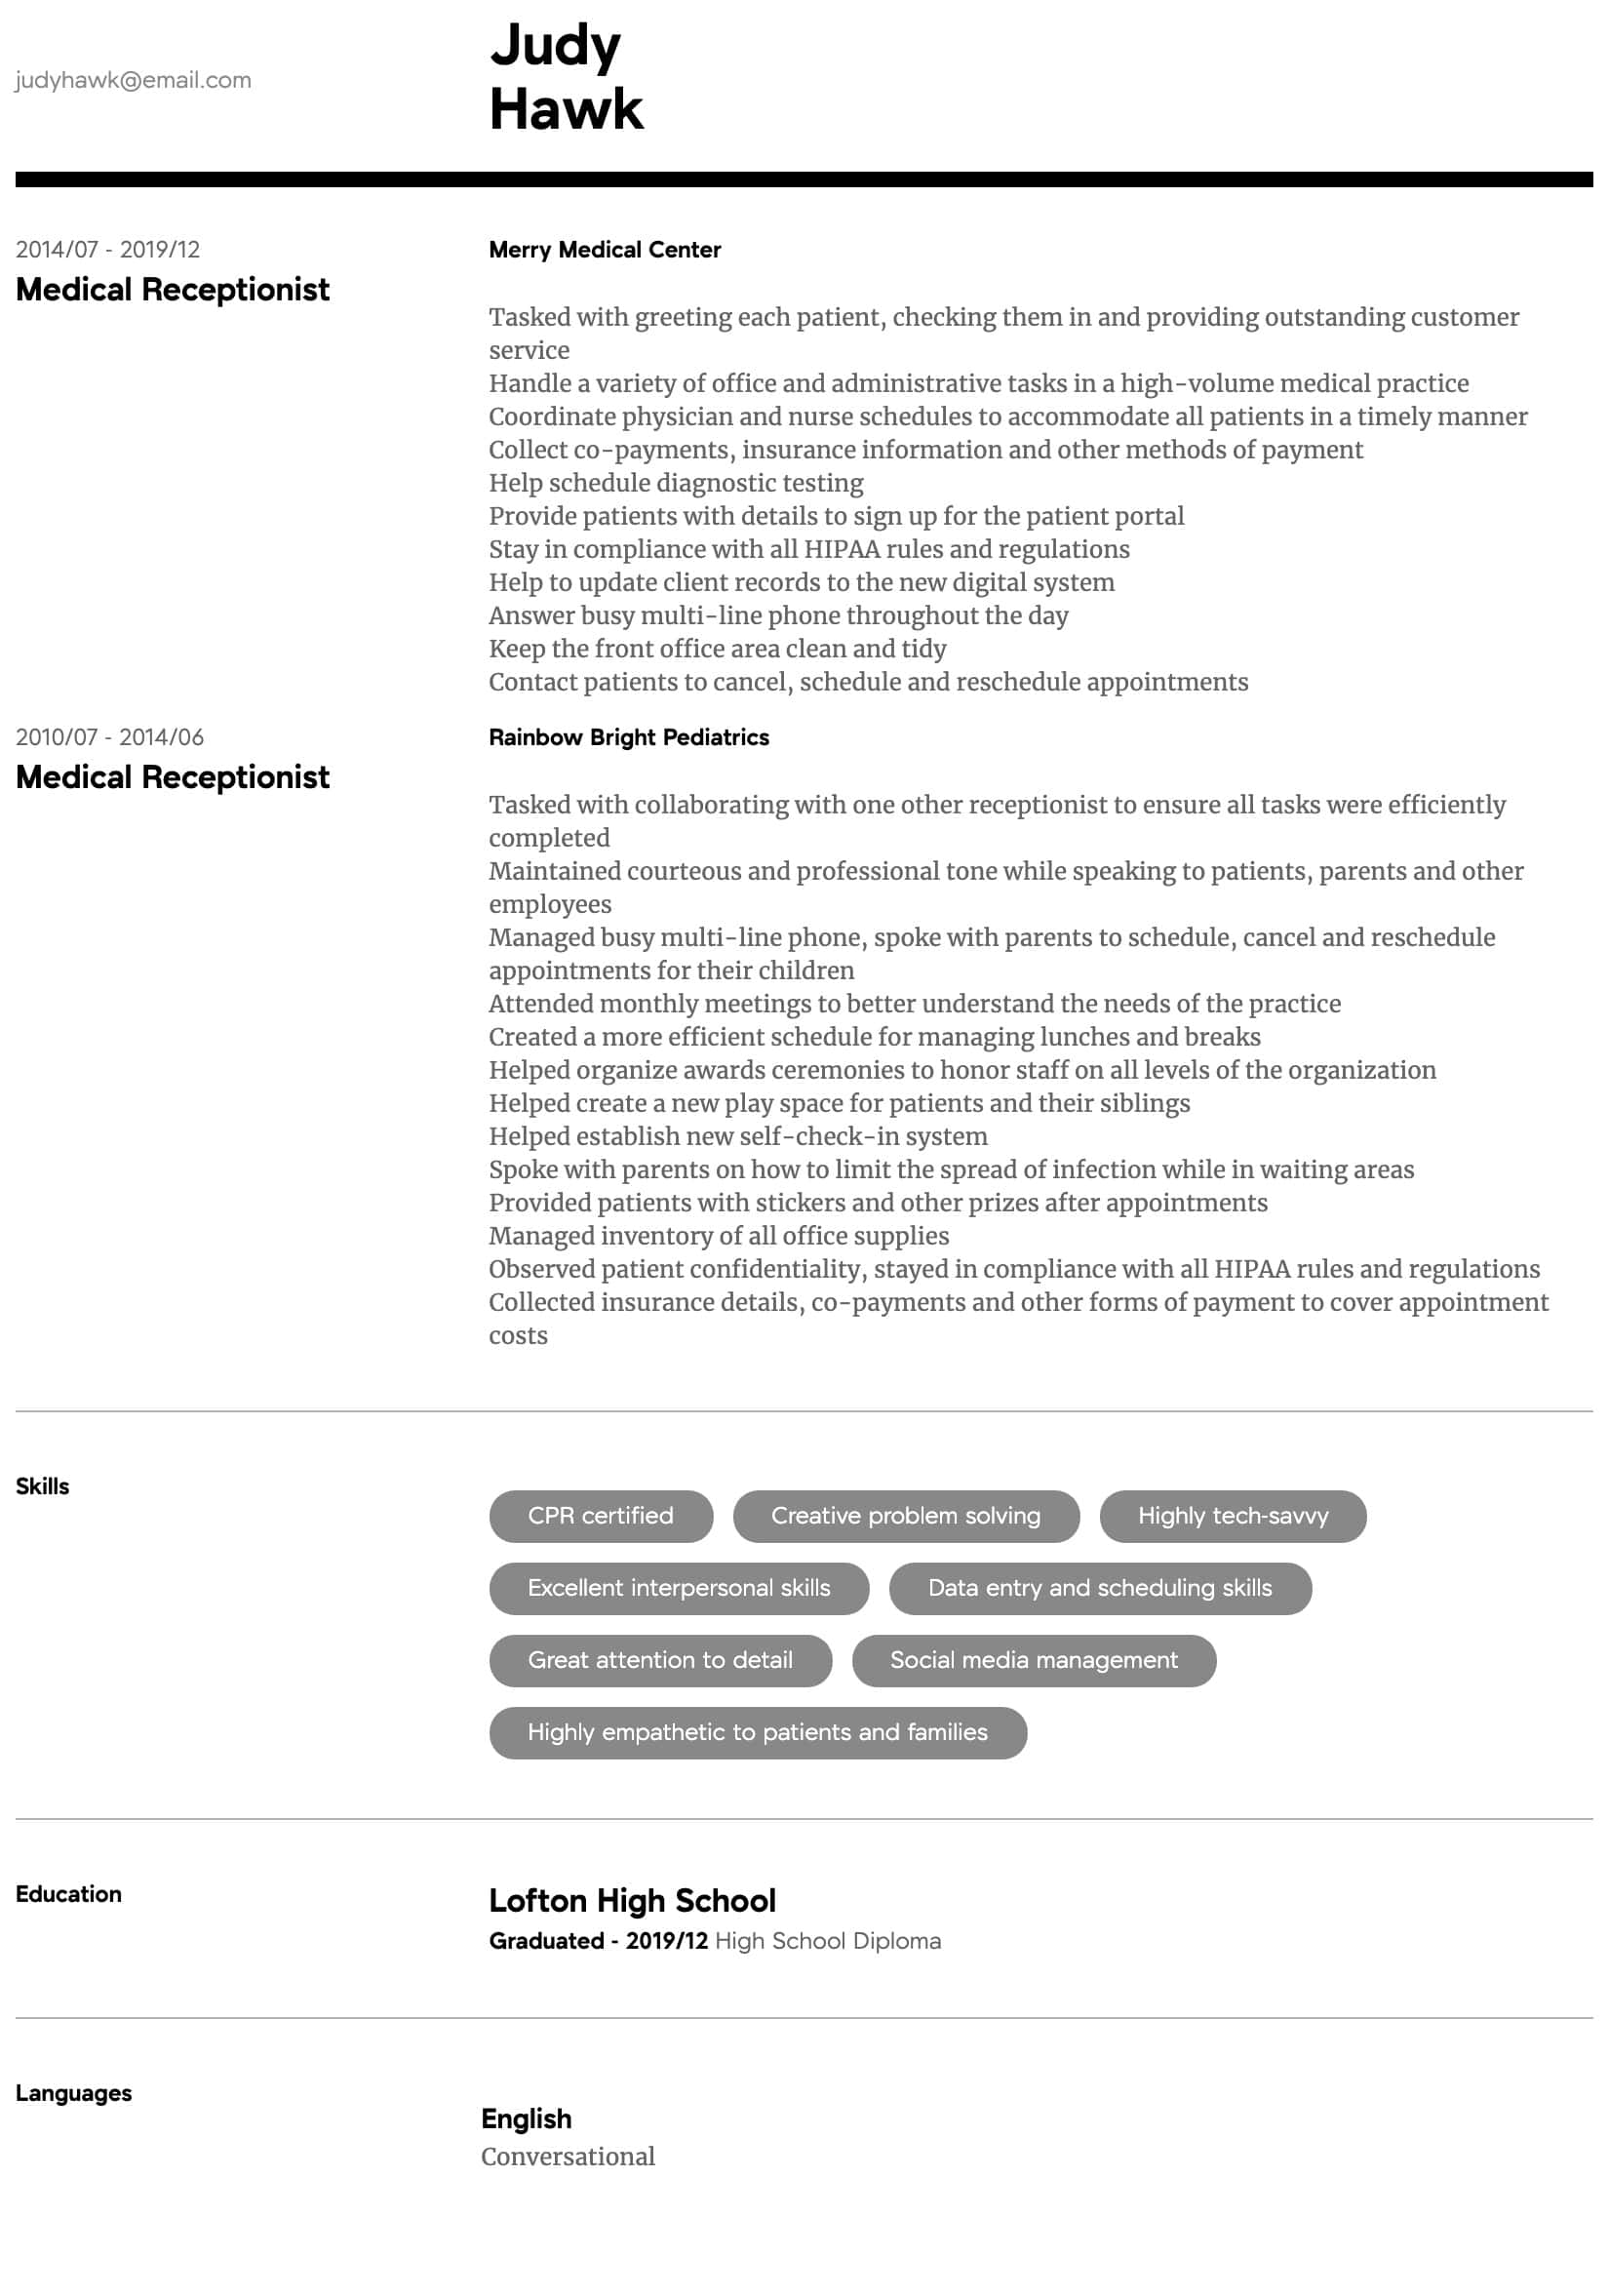 medical receptionist resume samples all experience levels front desk intermediate child Resume Front Desk Medical Receptionist Resume